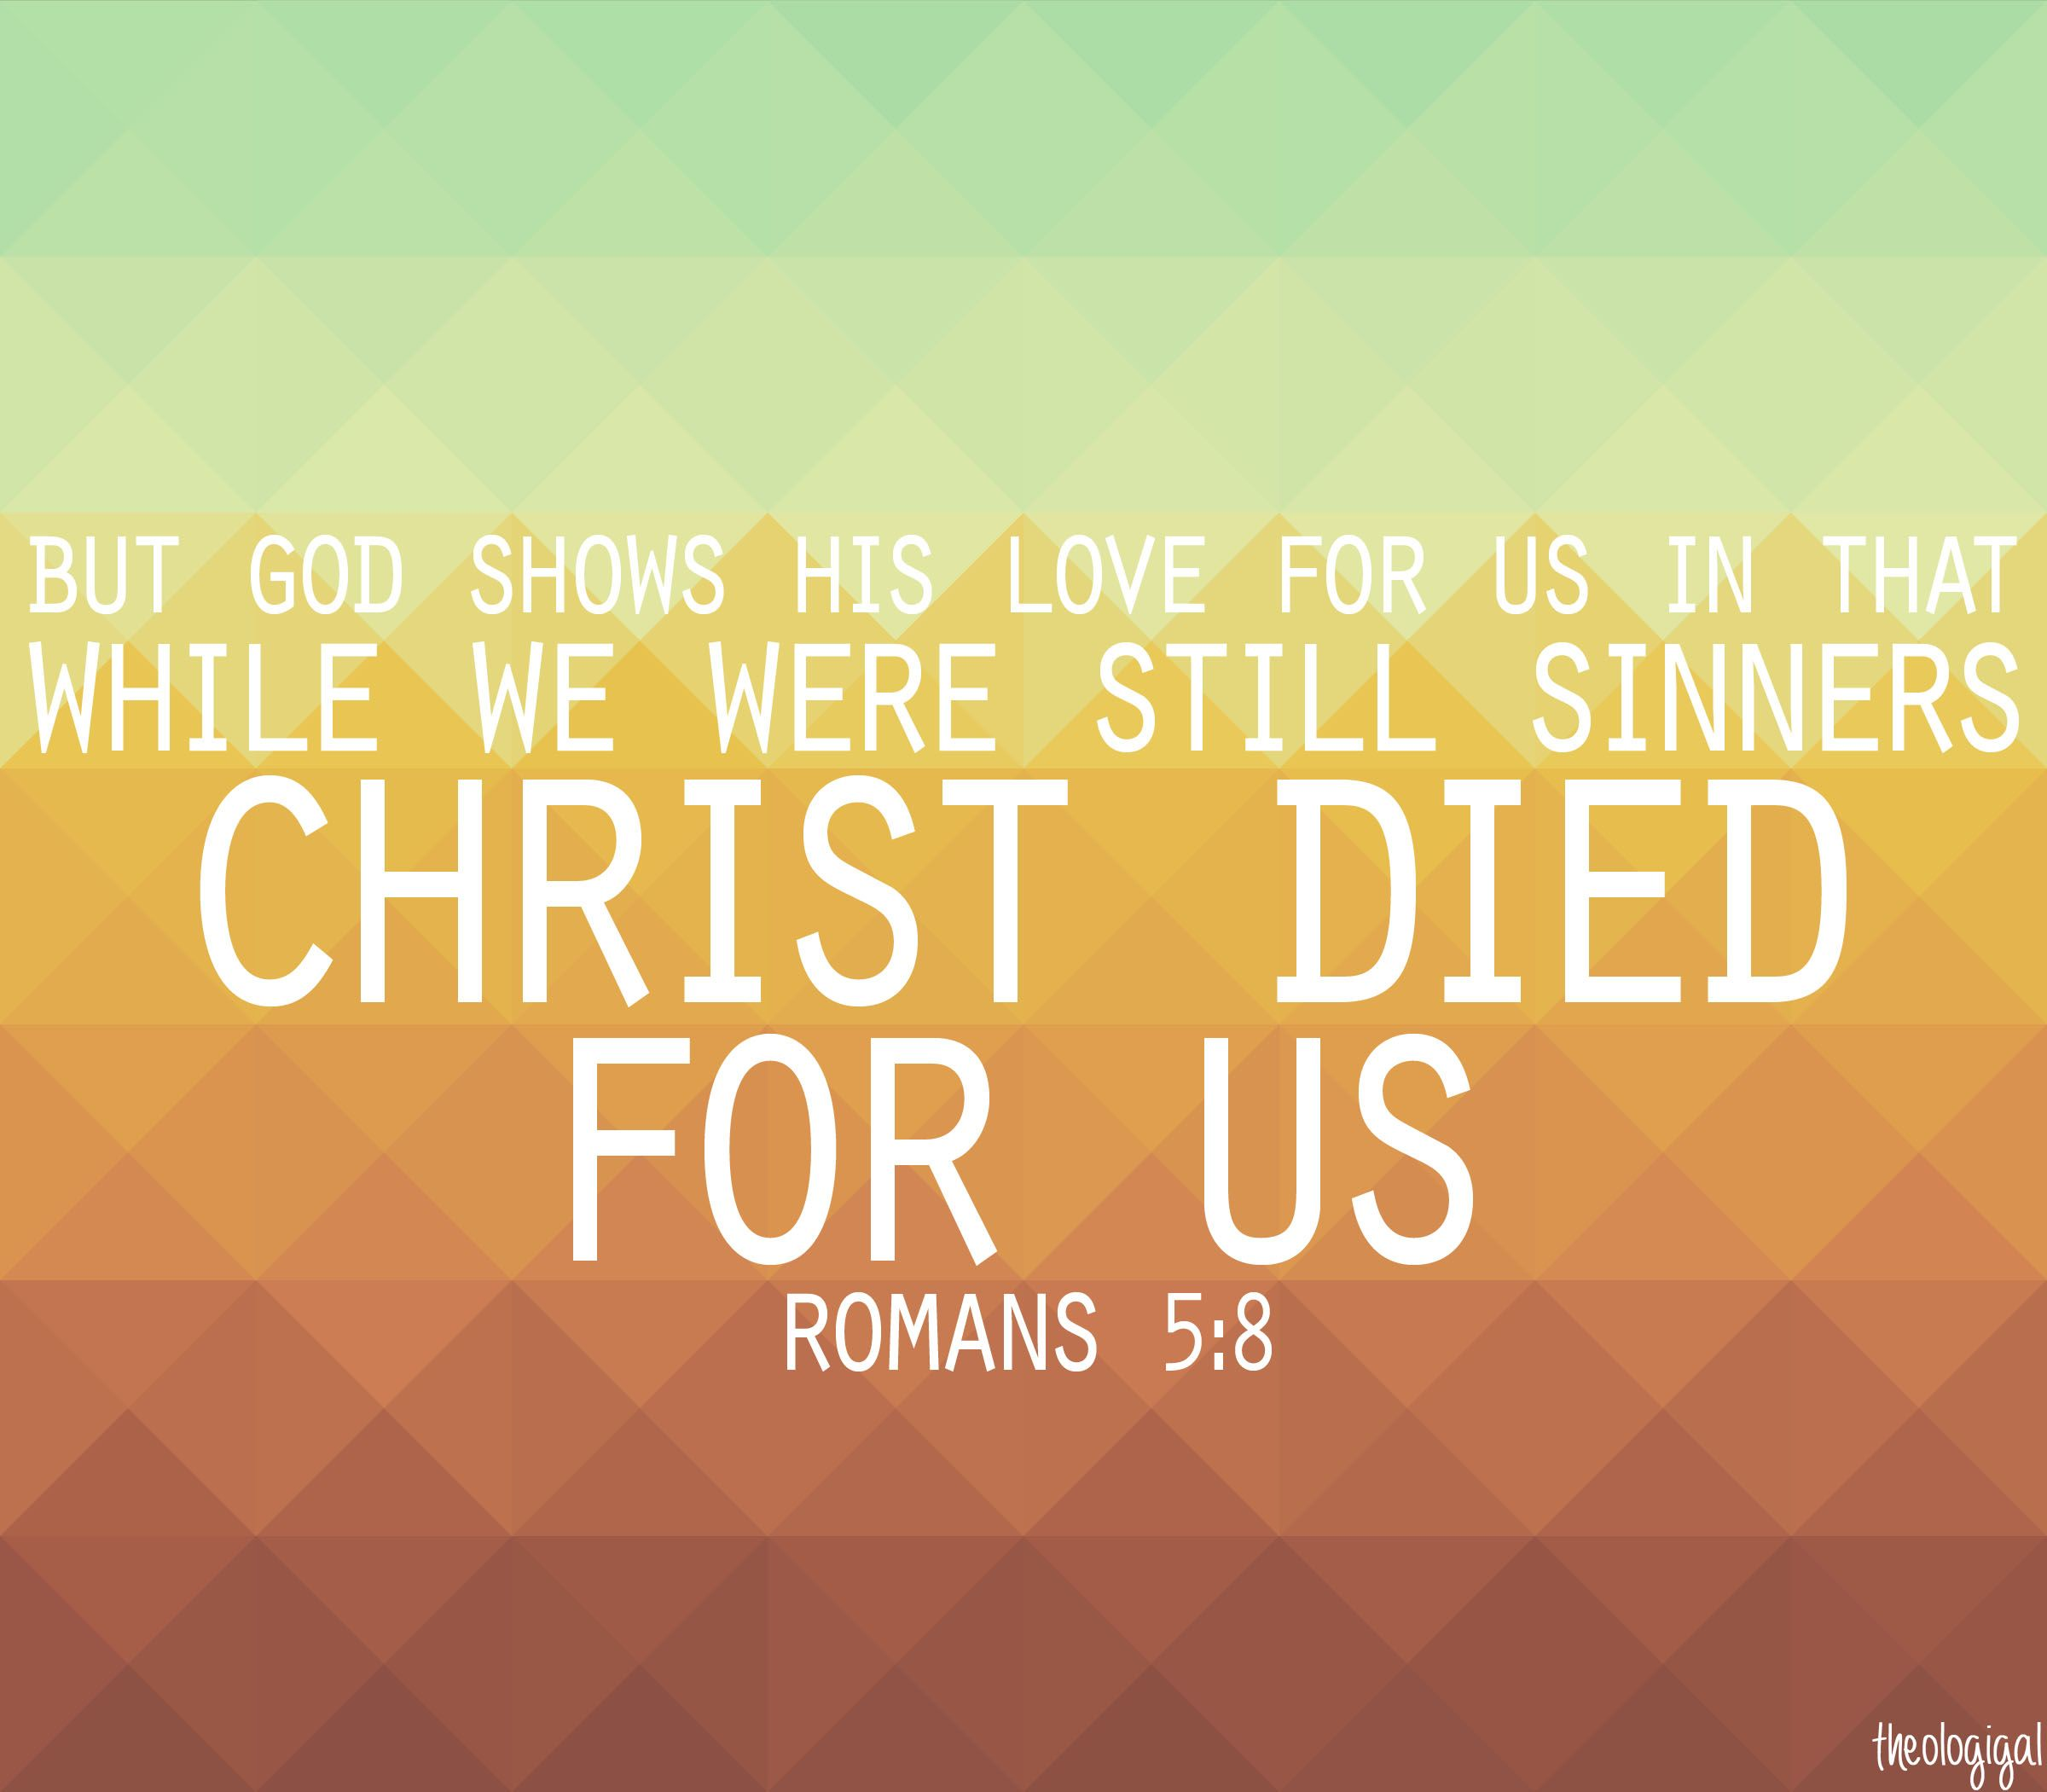 Bible Verse Romans But Shows His Love For Us In That While We Were Still Sinners Christ Died For Us